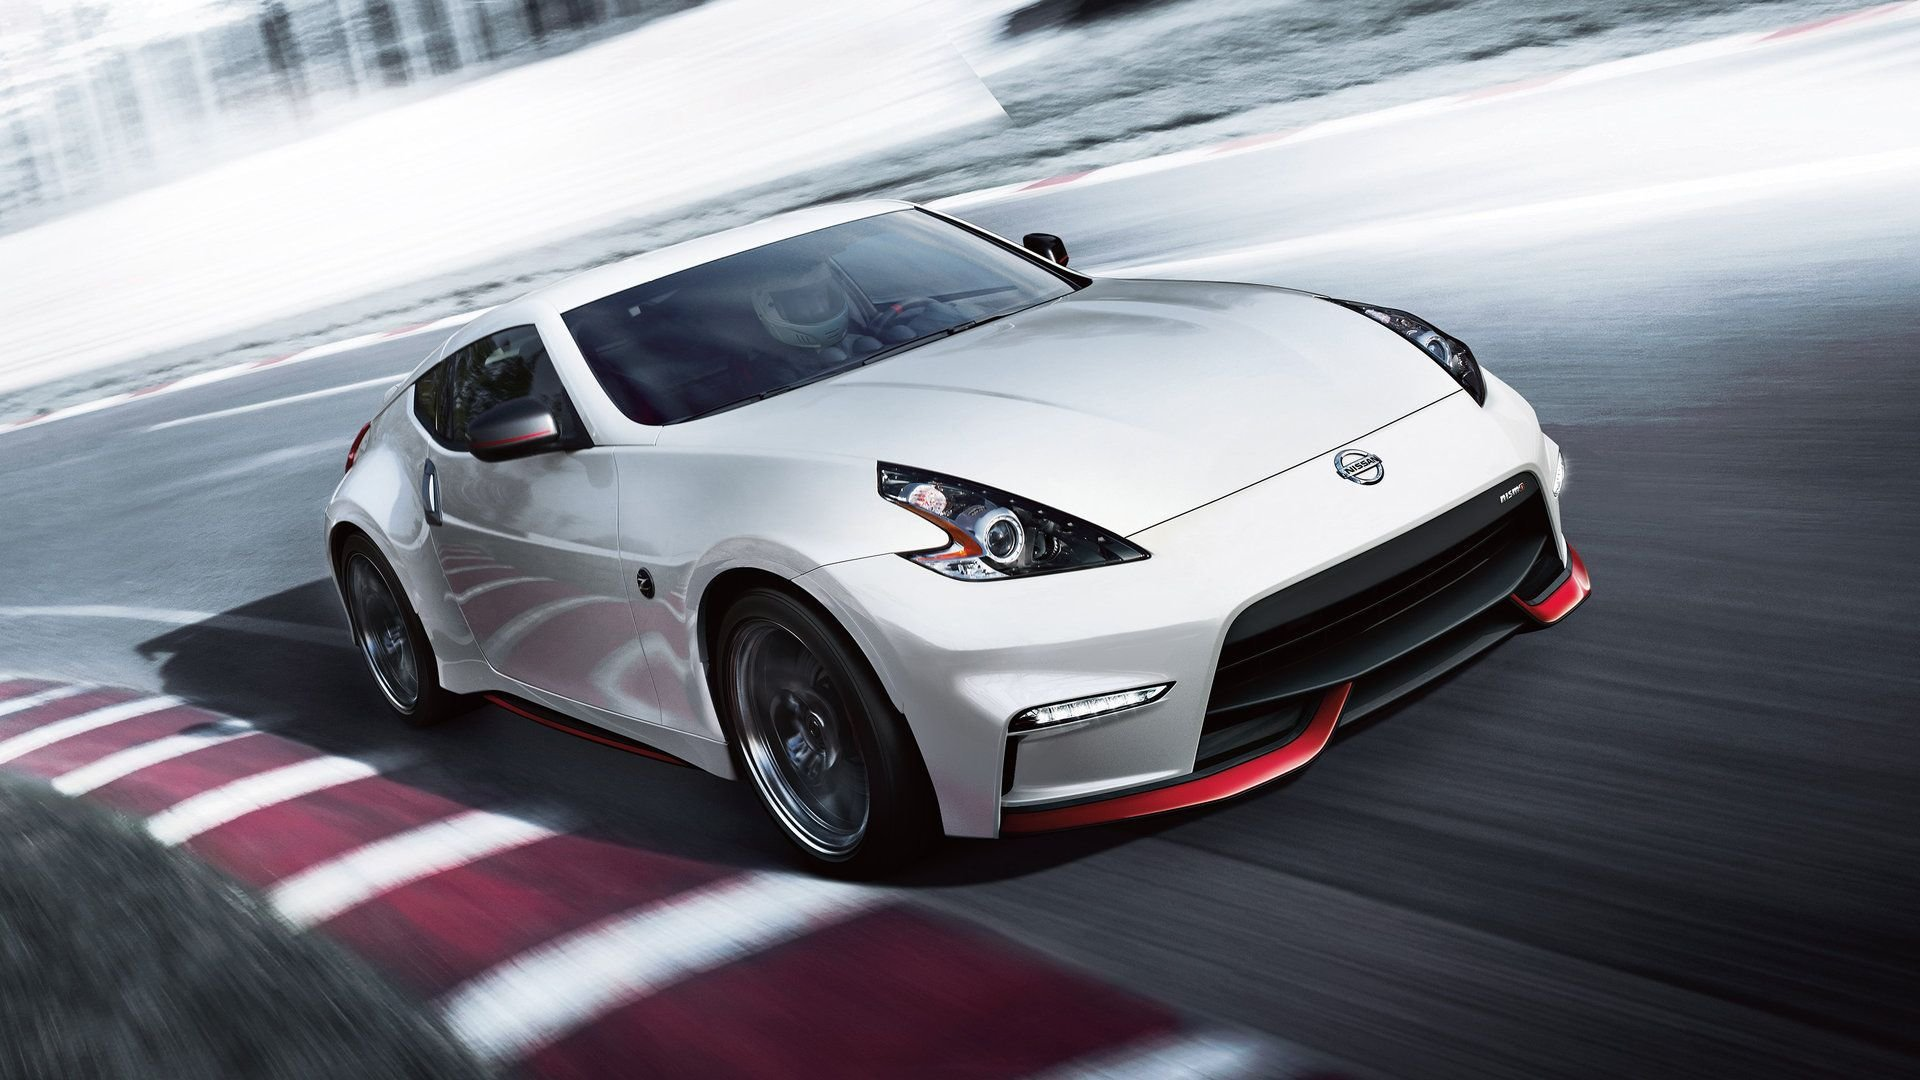 New 2015 Nissan 370Z Nismo Wallpaper Hd Http Hdcarwallfx On This Month